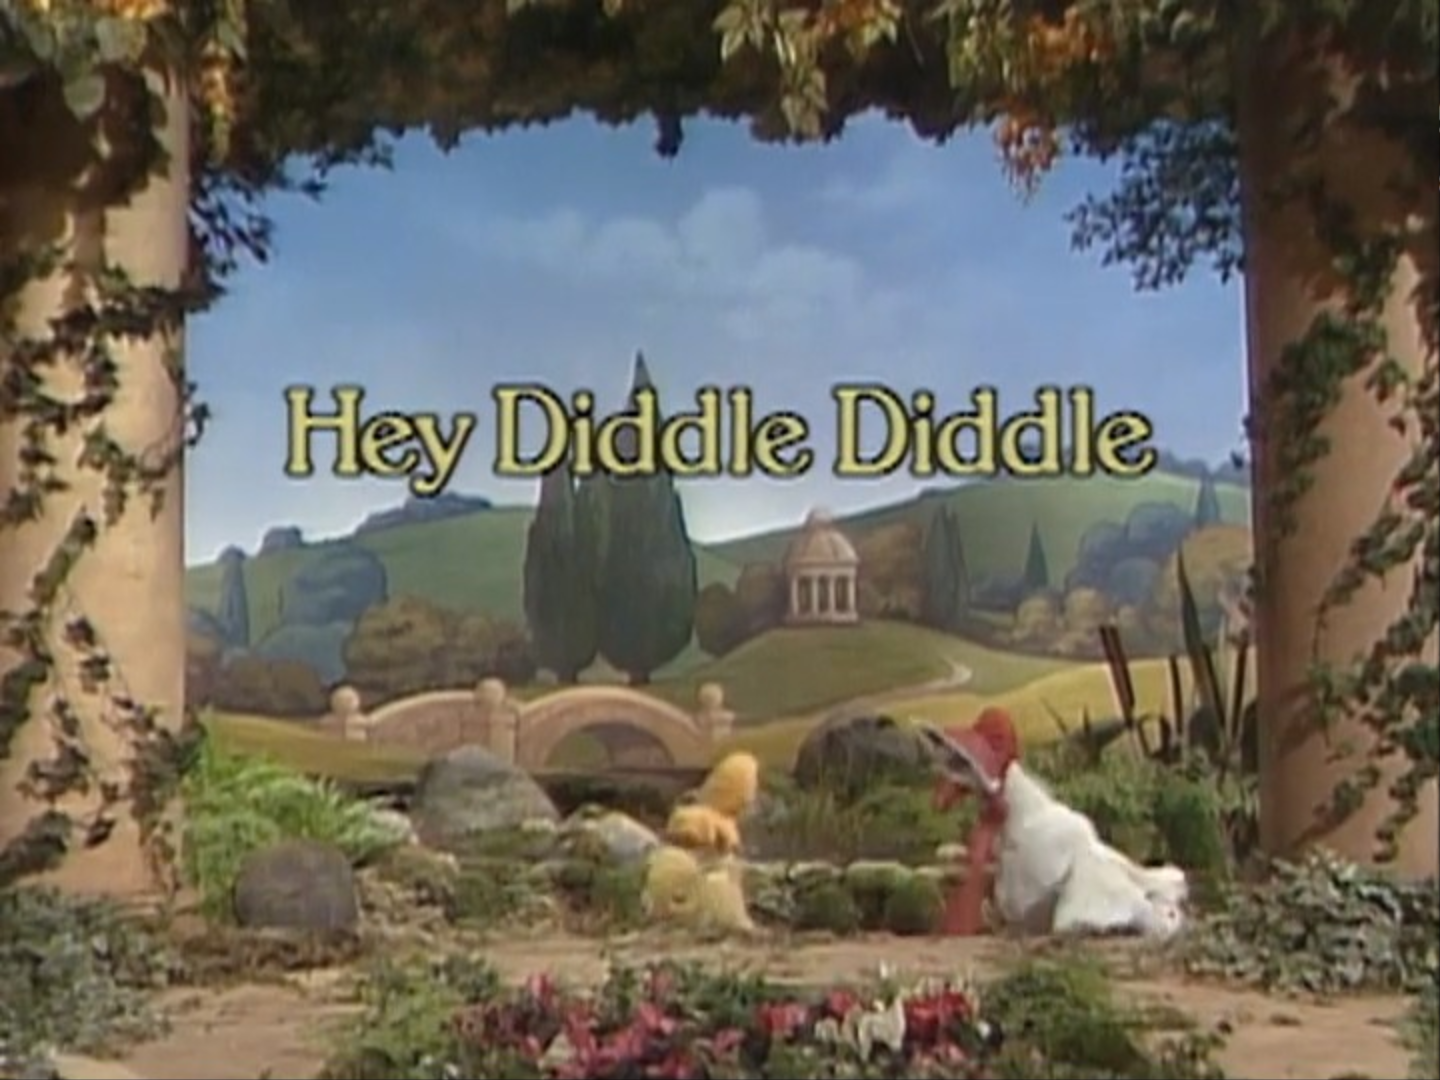 Episode 13: Hey Diddle Diddle